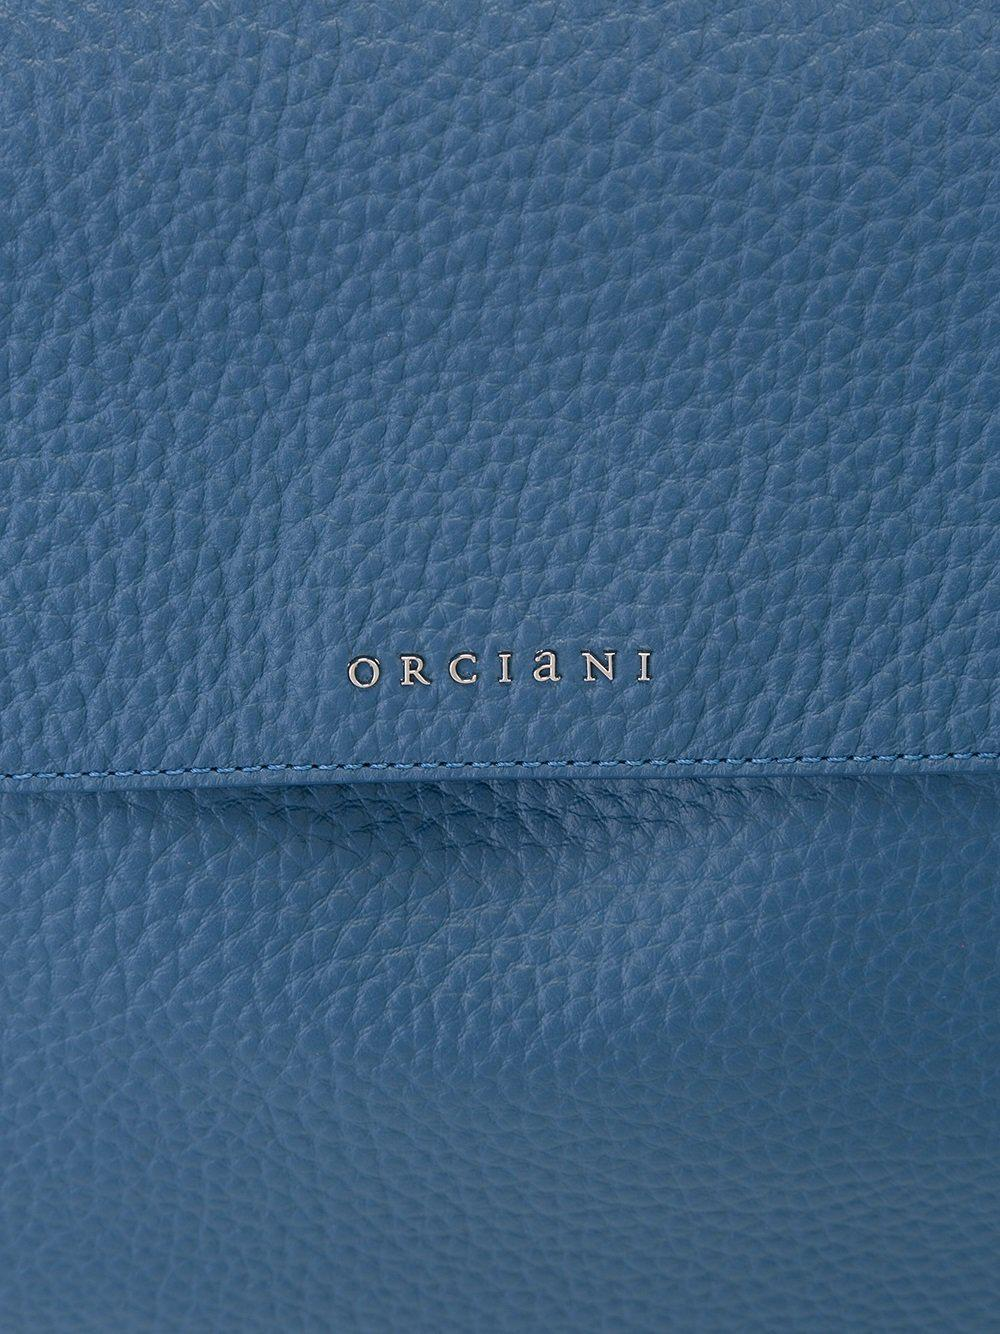 Orciani Satchel Leather Tote Bag in Blue